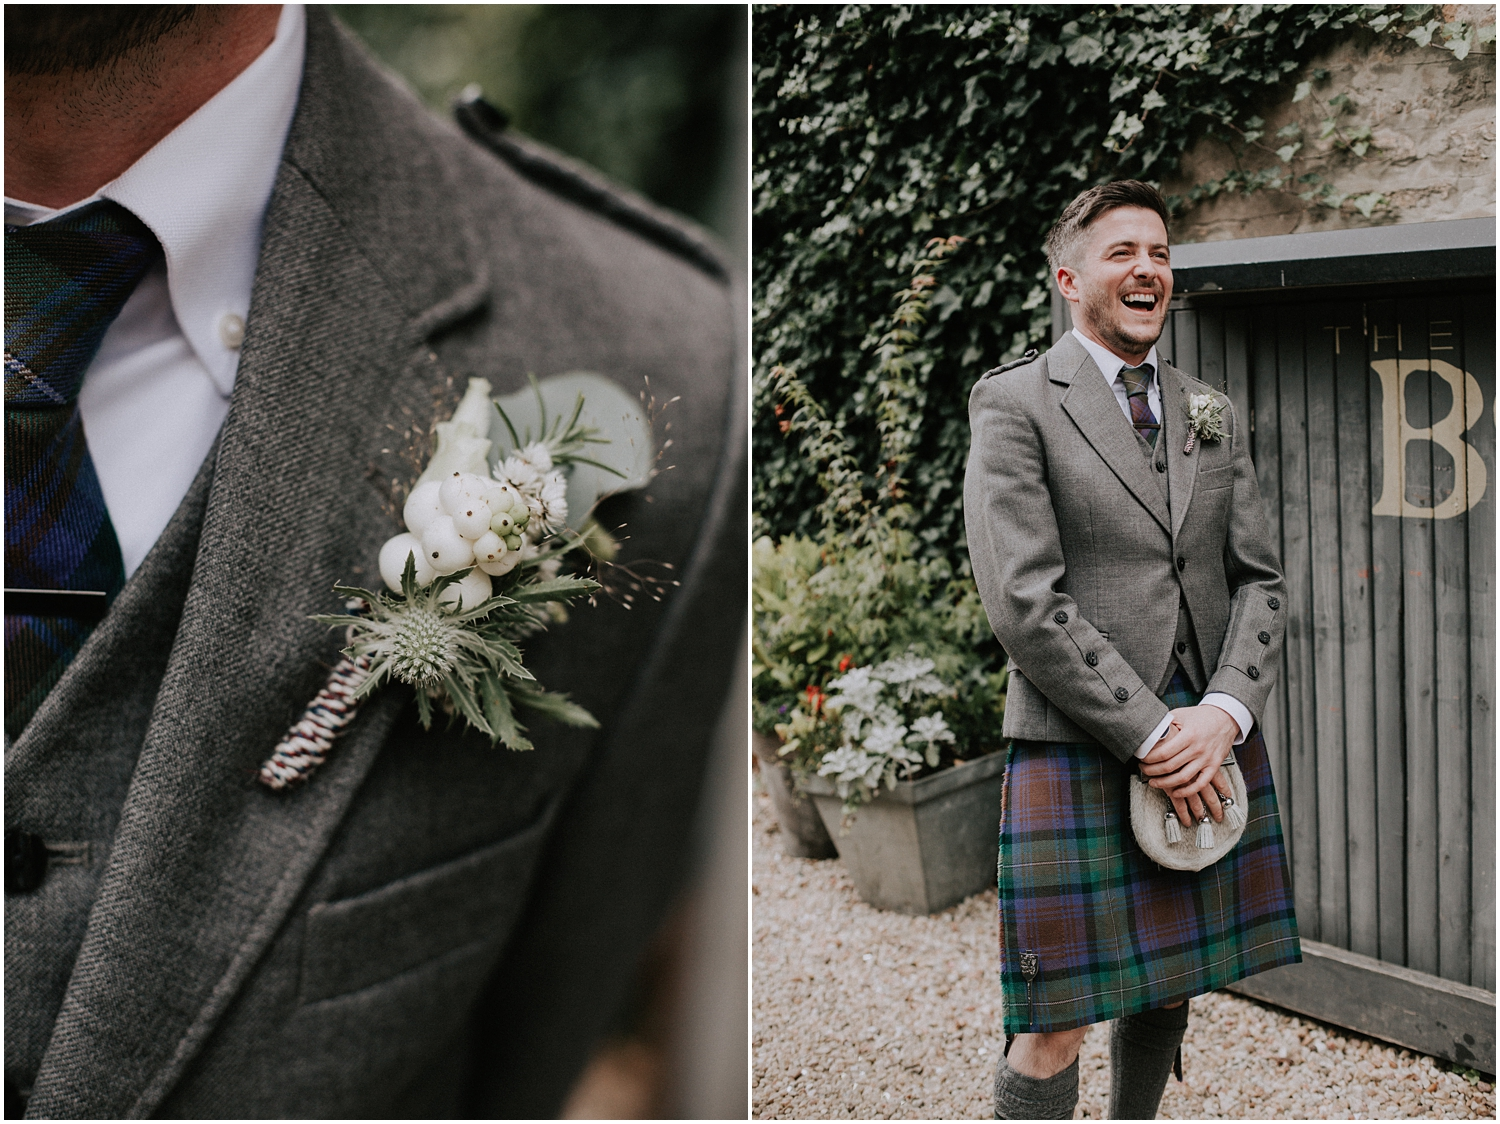 The groom's portrait at the Bothy